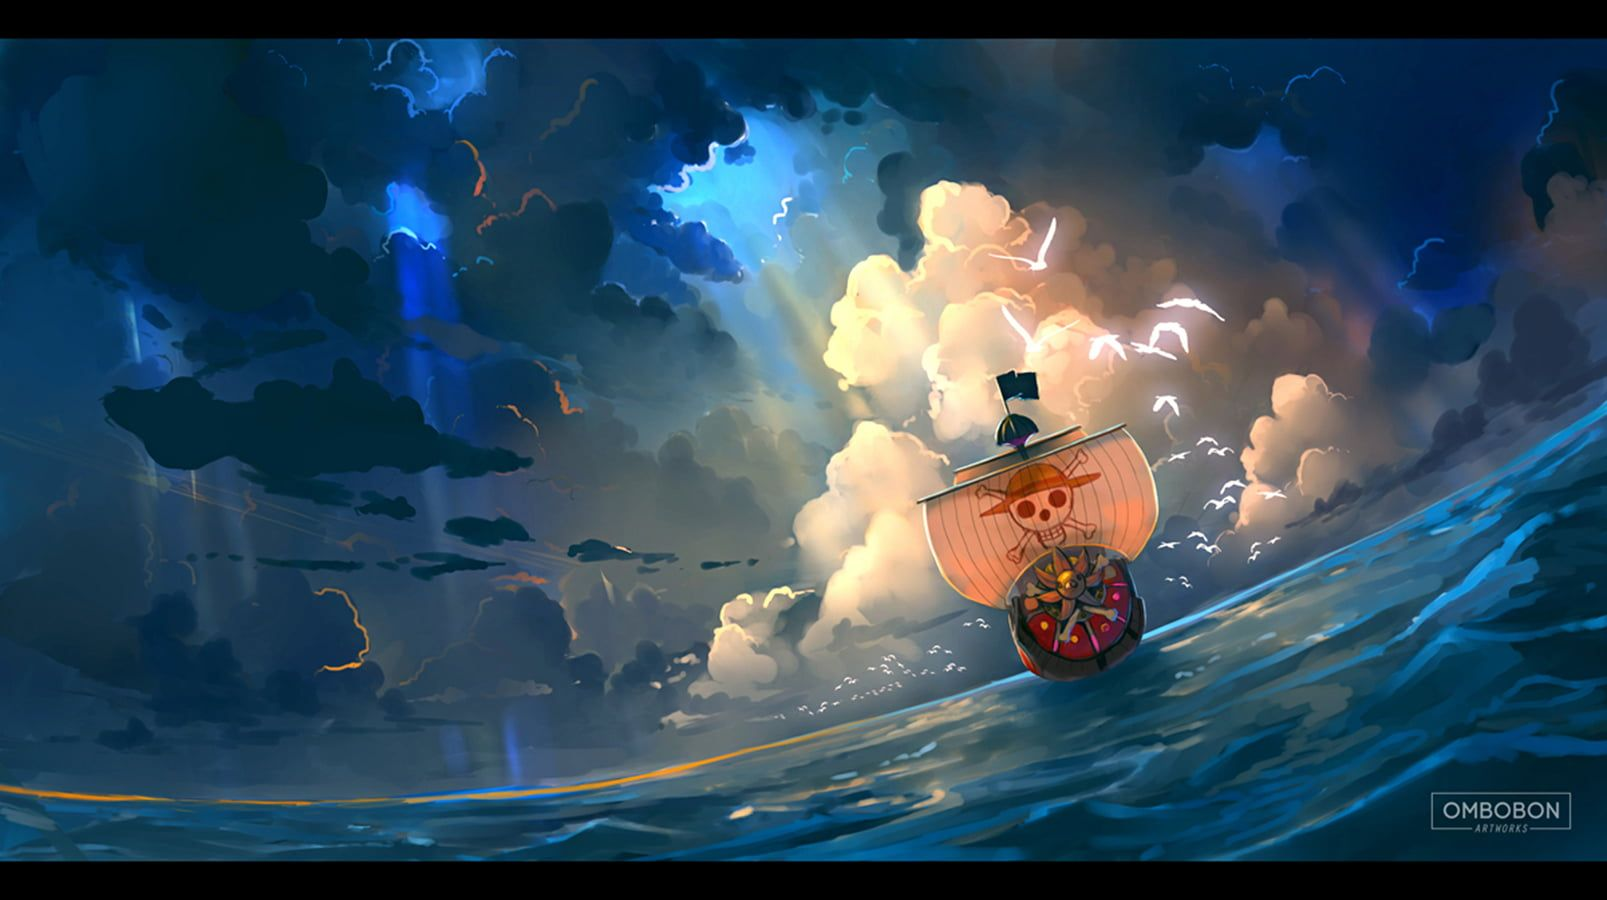 One Piece 3d Wallpapers Top Free One Piece 3d Backgrounds Wallpaperaccess